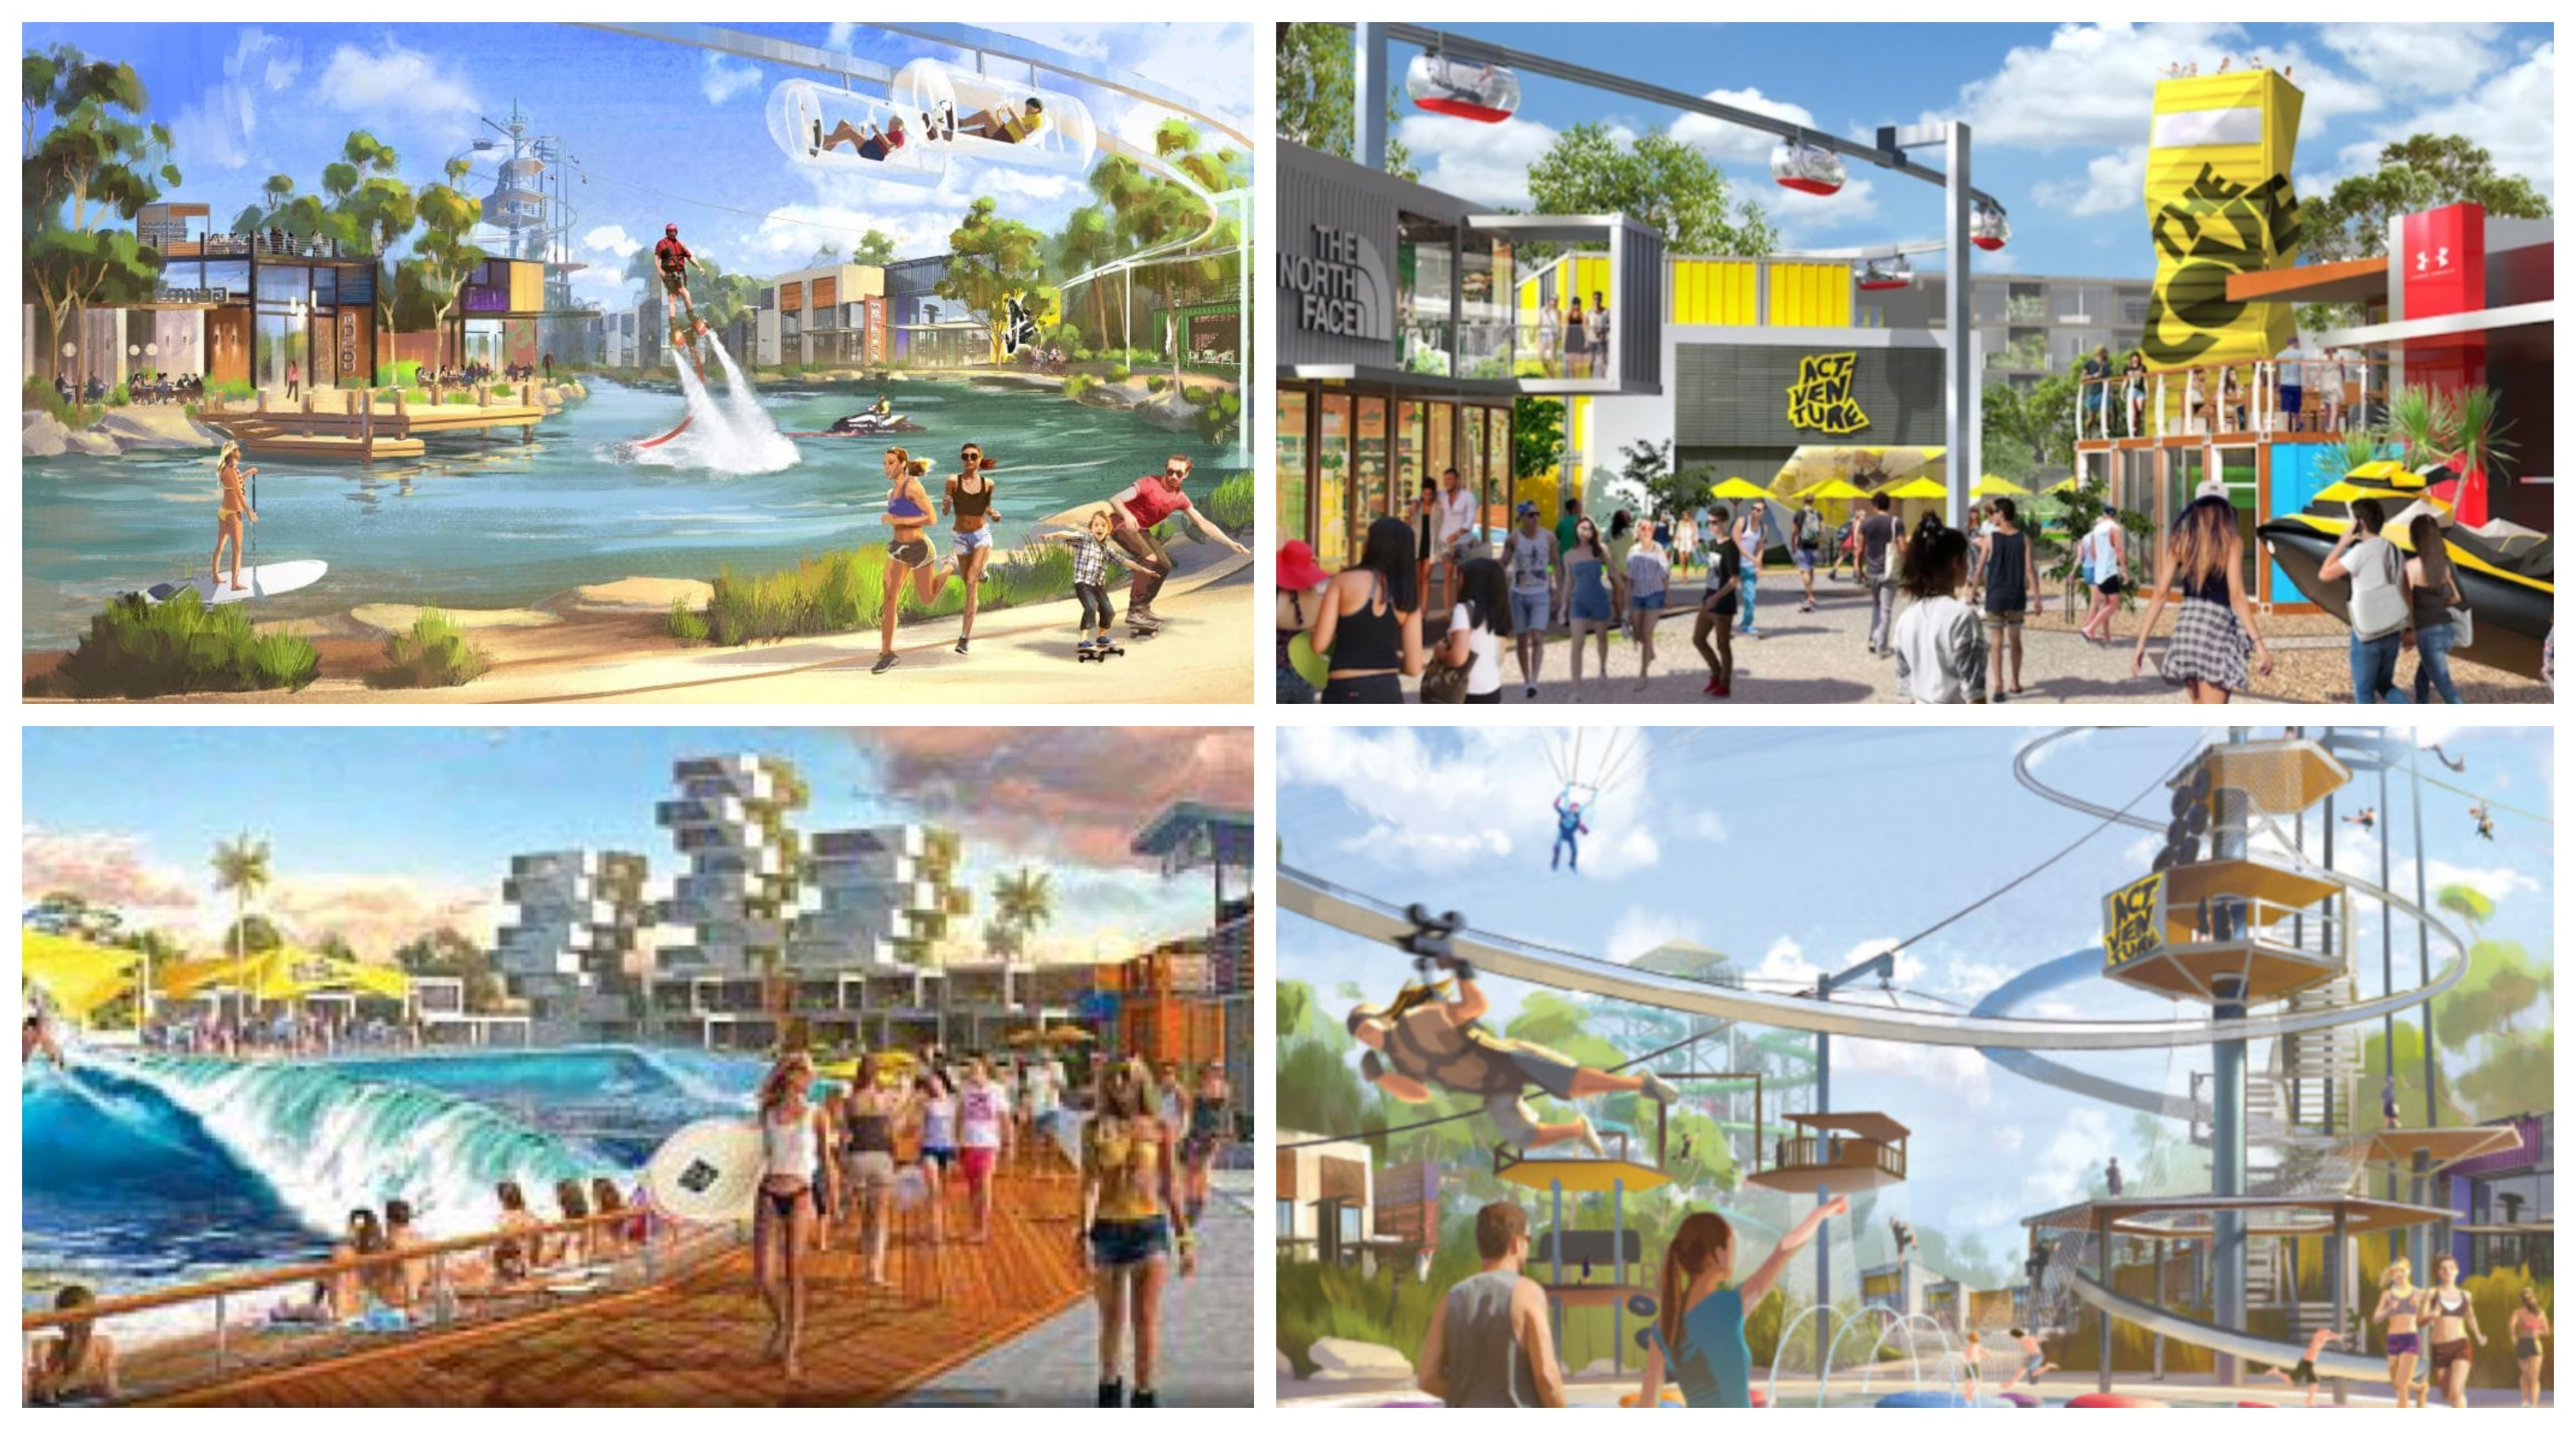 An artist's impression of ACTVENTURE, the $450 million theme park planned for 2652 Steve Irwin Way.